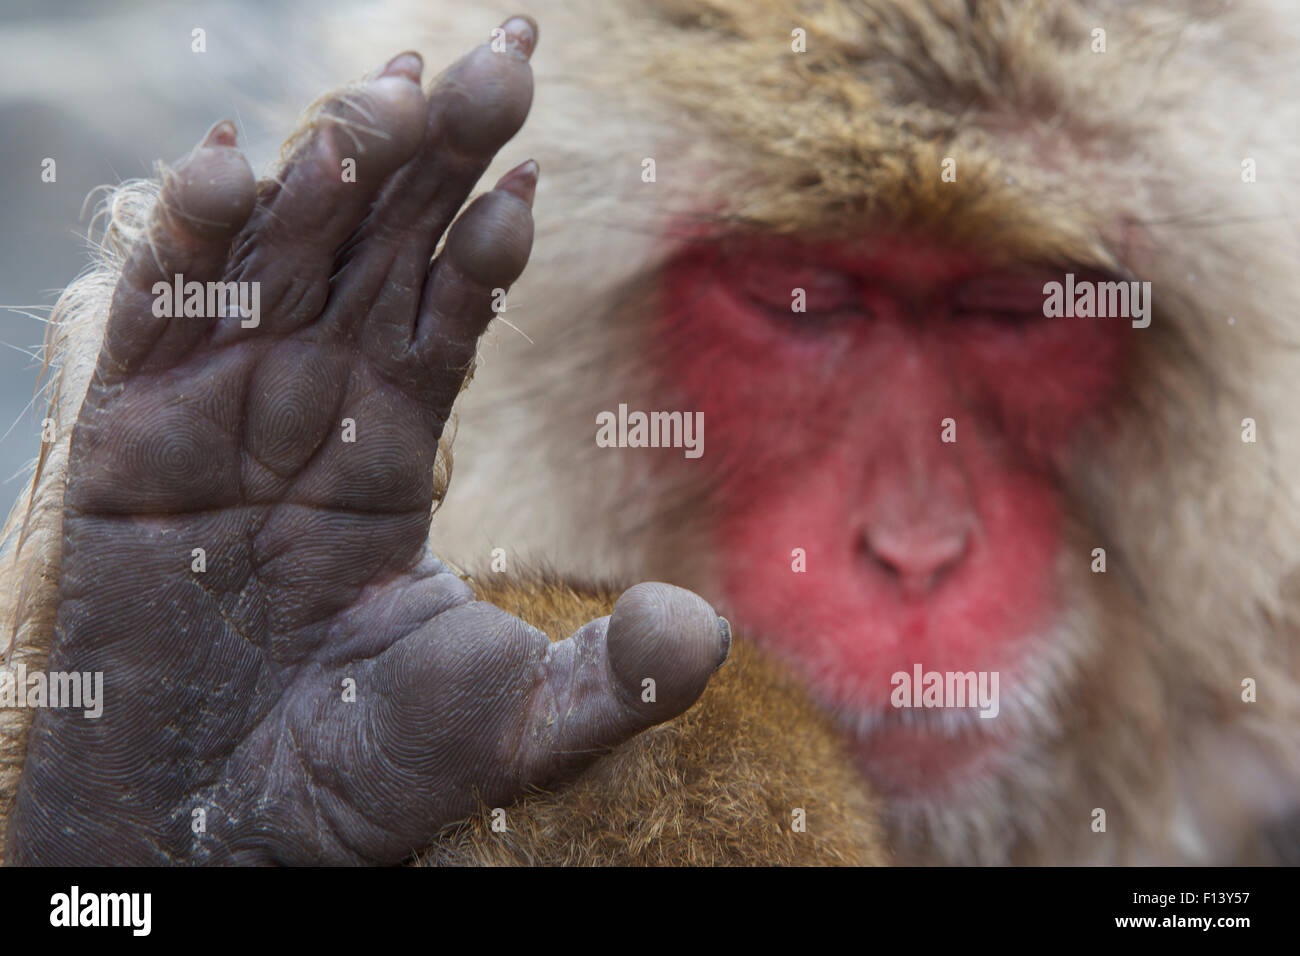 Japanese macaque (Macaca fuscata) sleeping at hot spring in Jigokudani, Yaenkoen, Nagano, Japan, February. - Stock Image